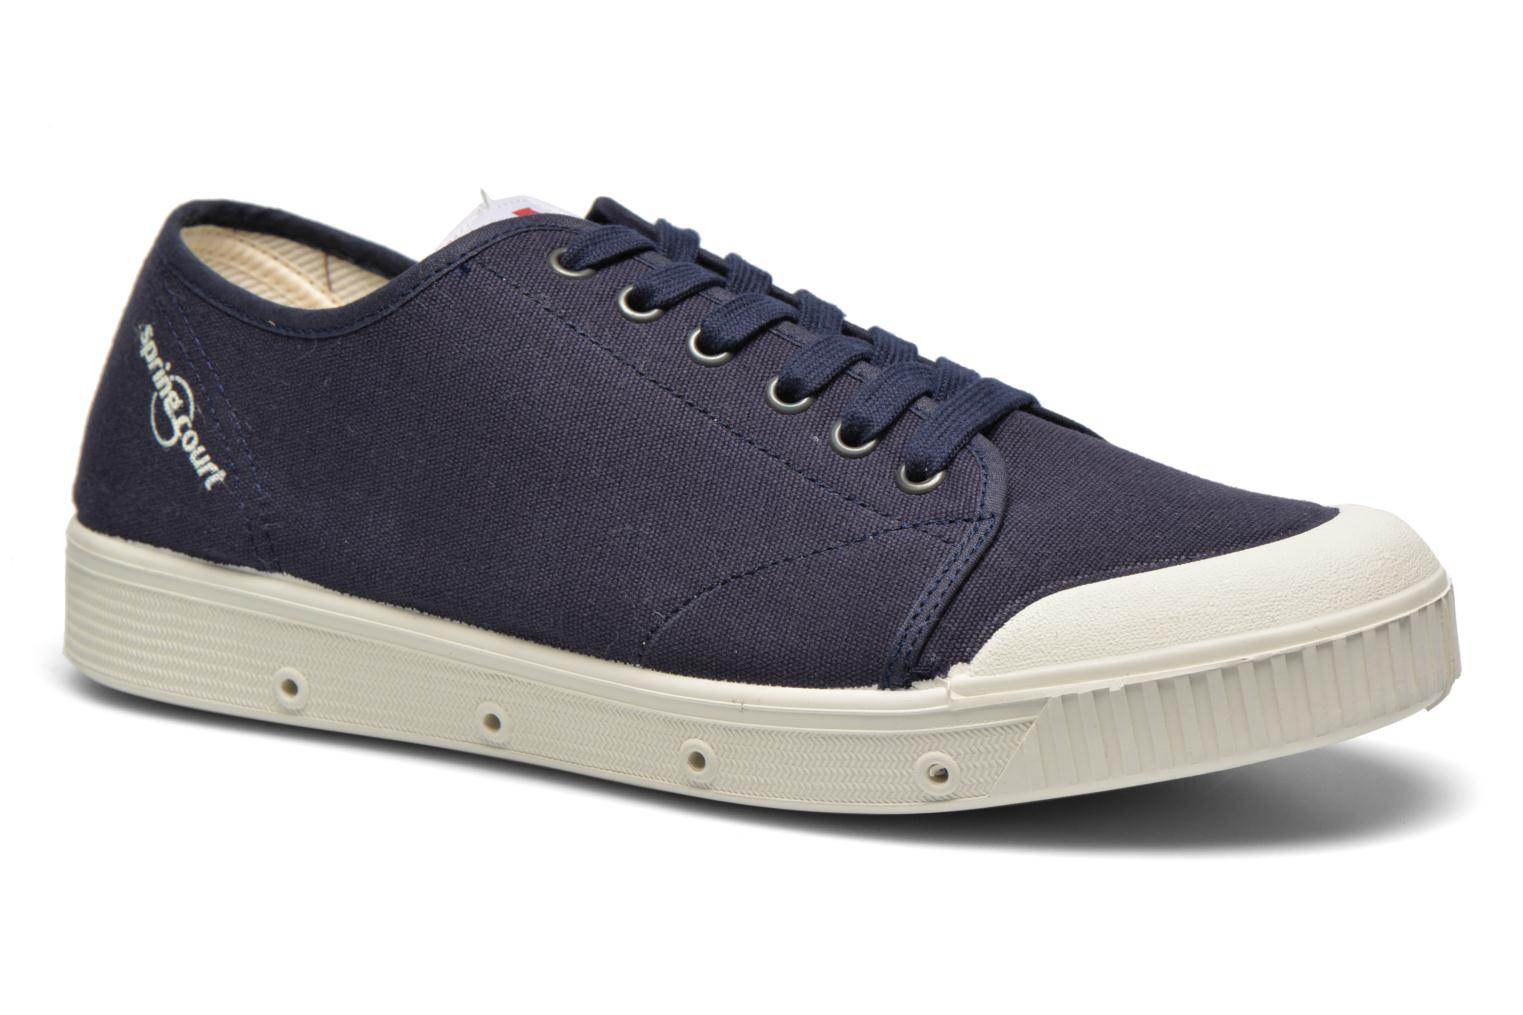 Sneakers G2 Toile M by Spring Court